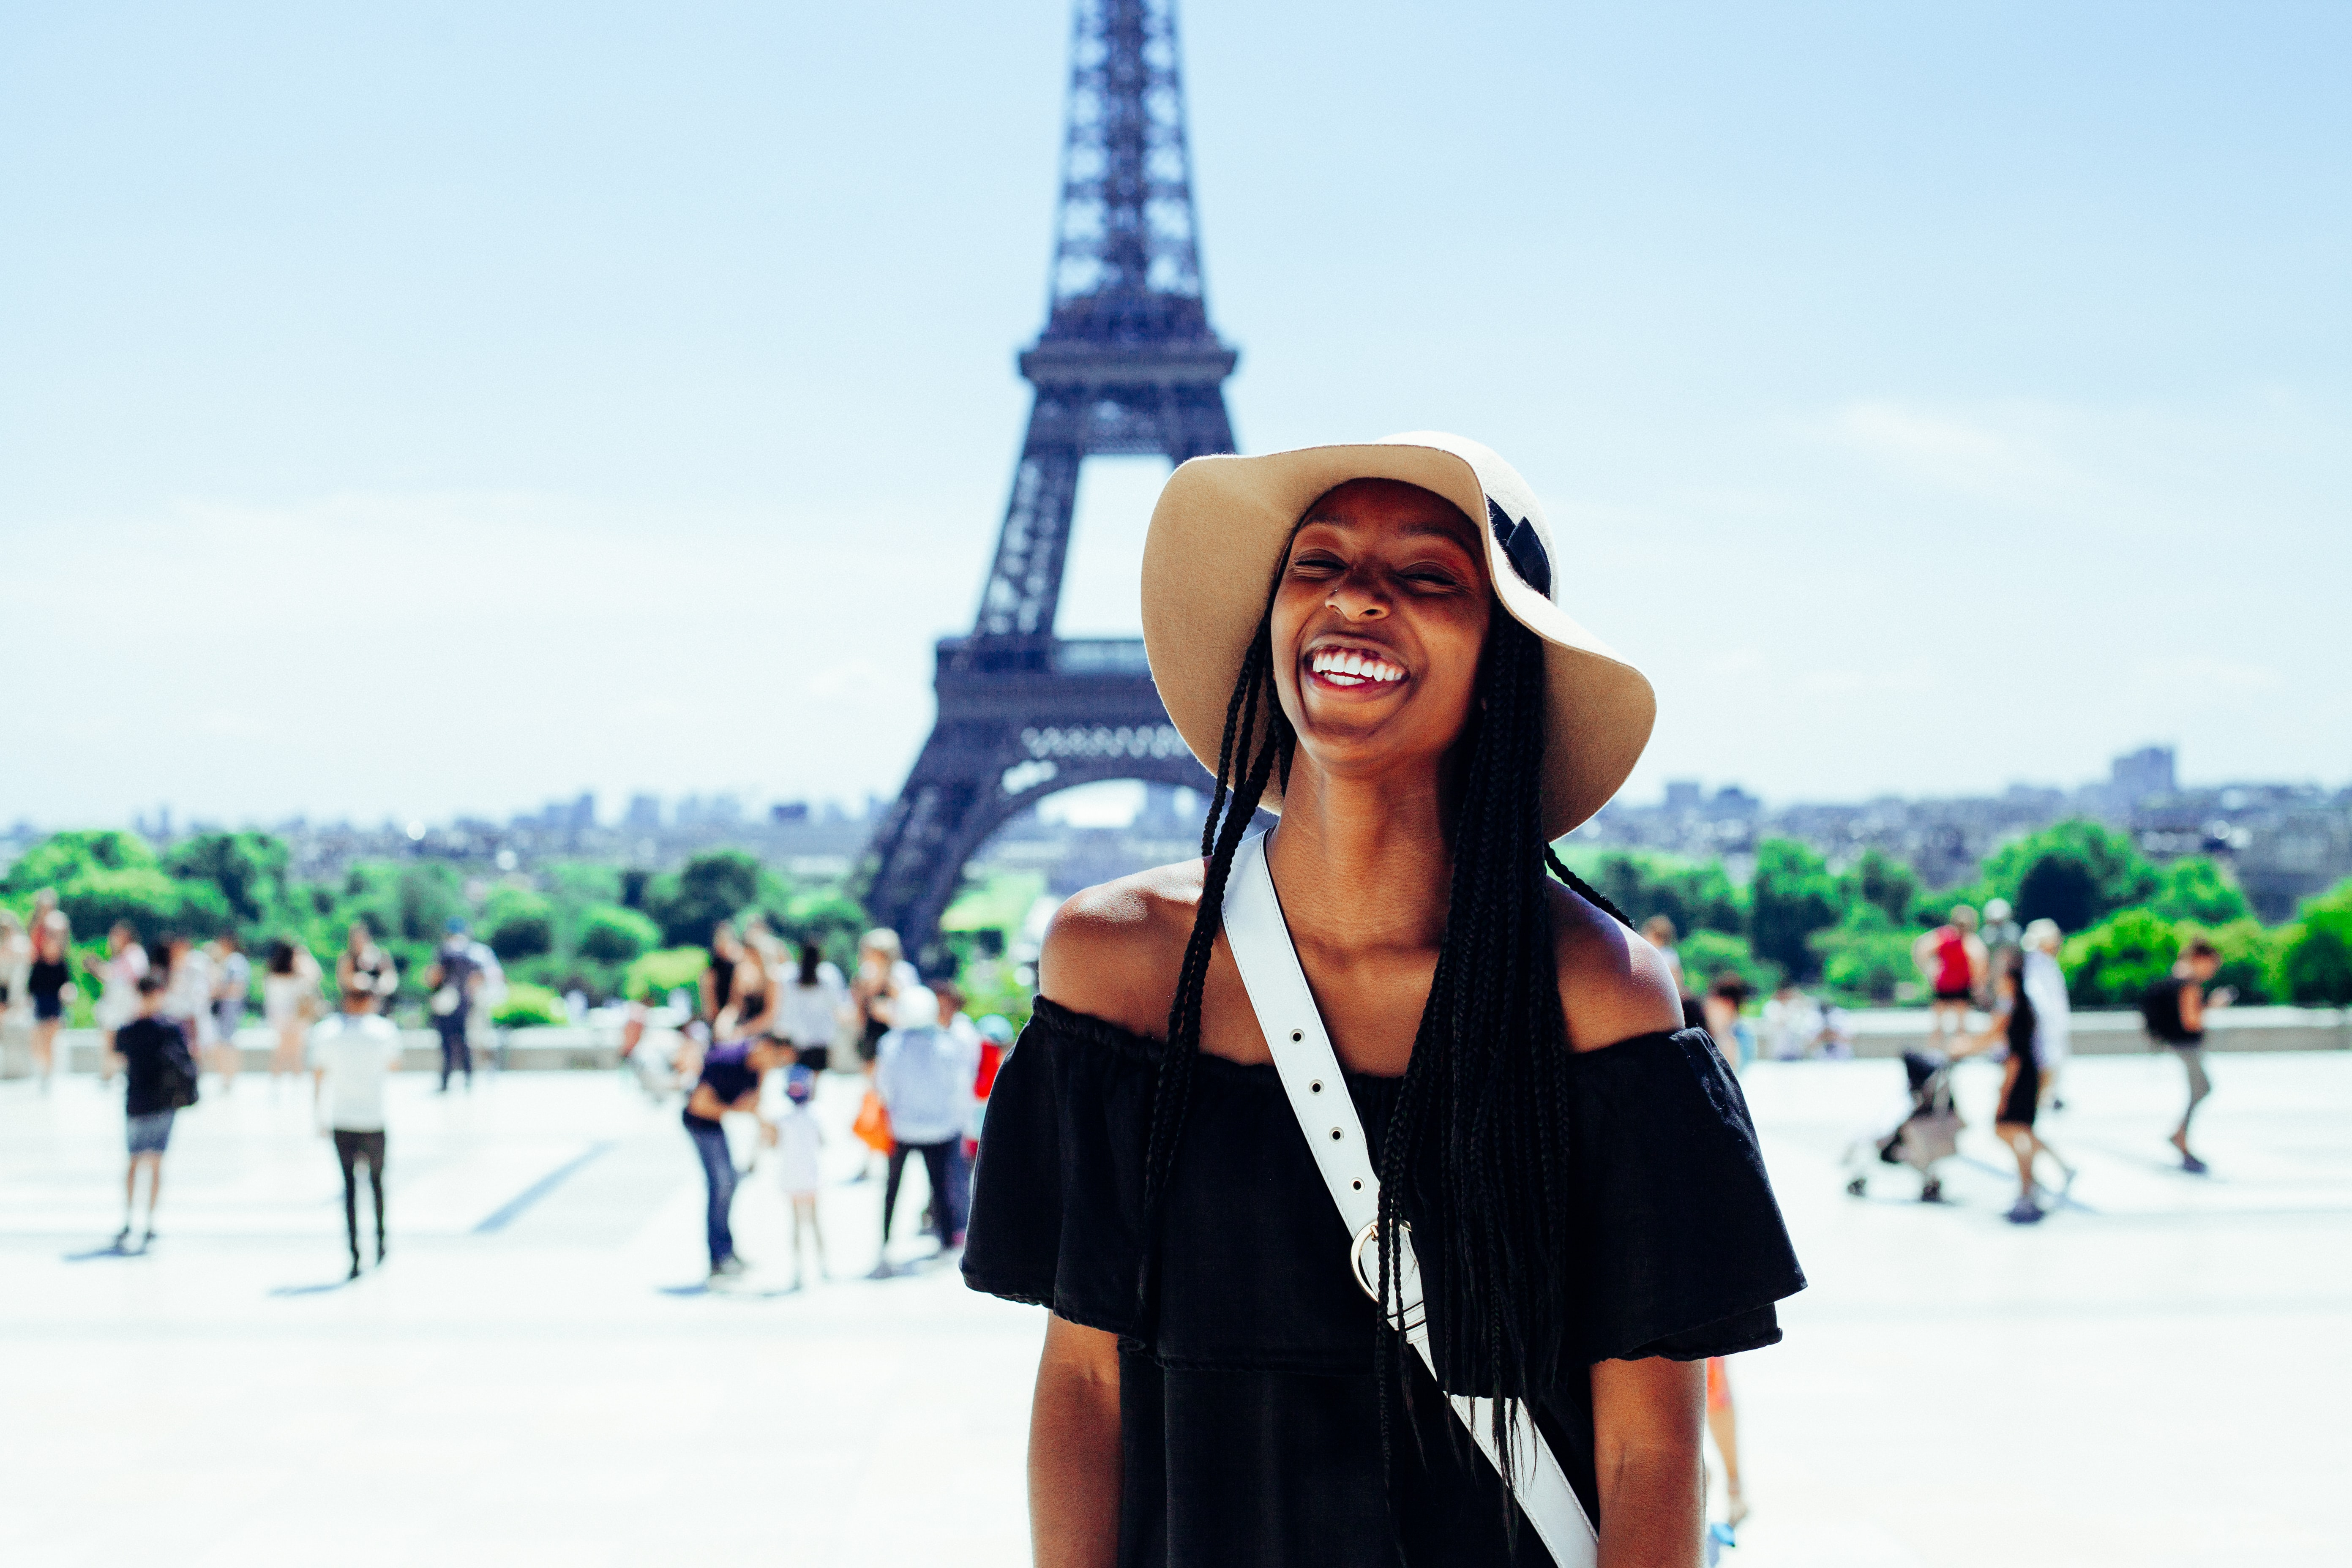 Woman by the Eiffel Tower